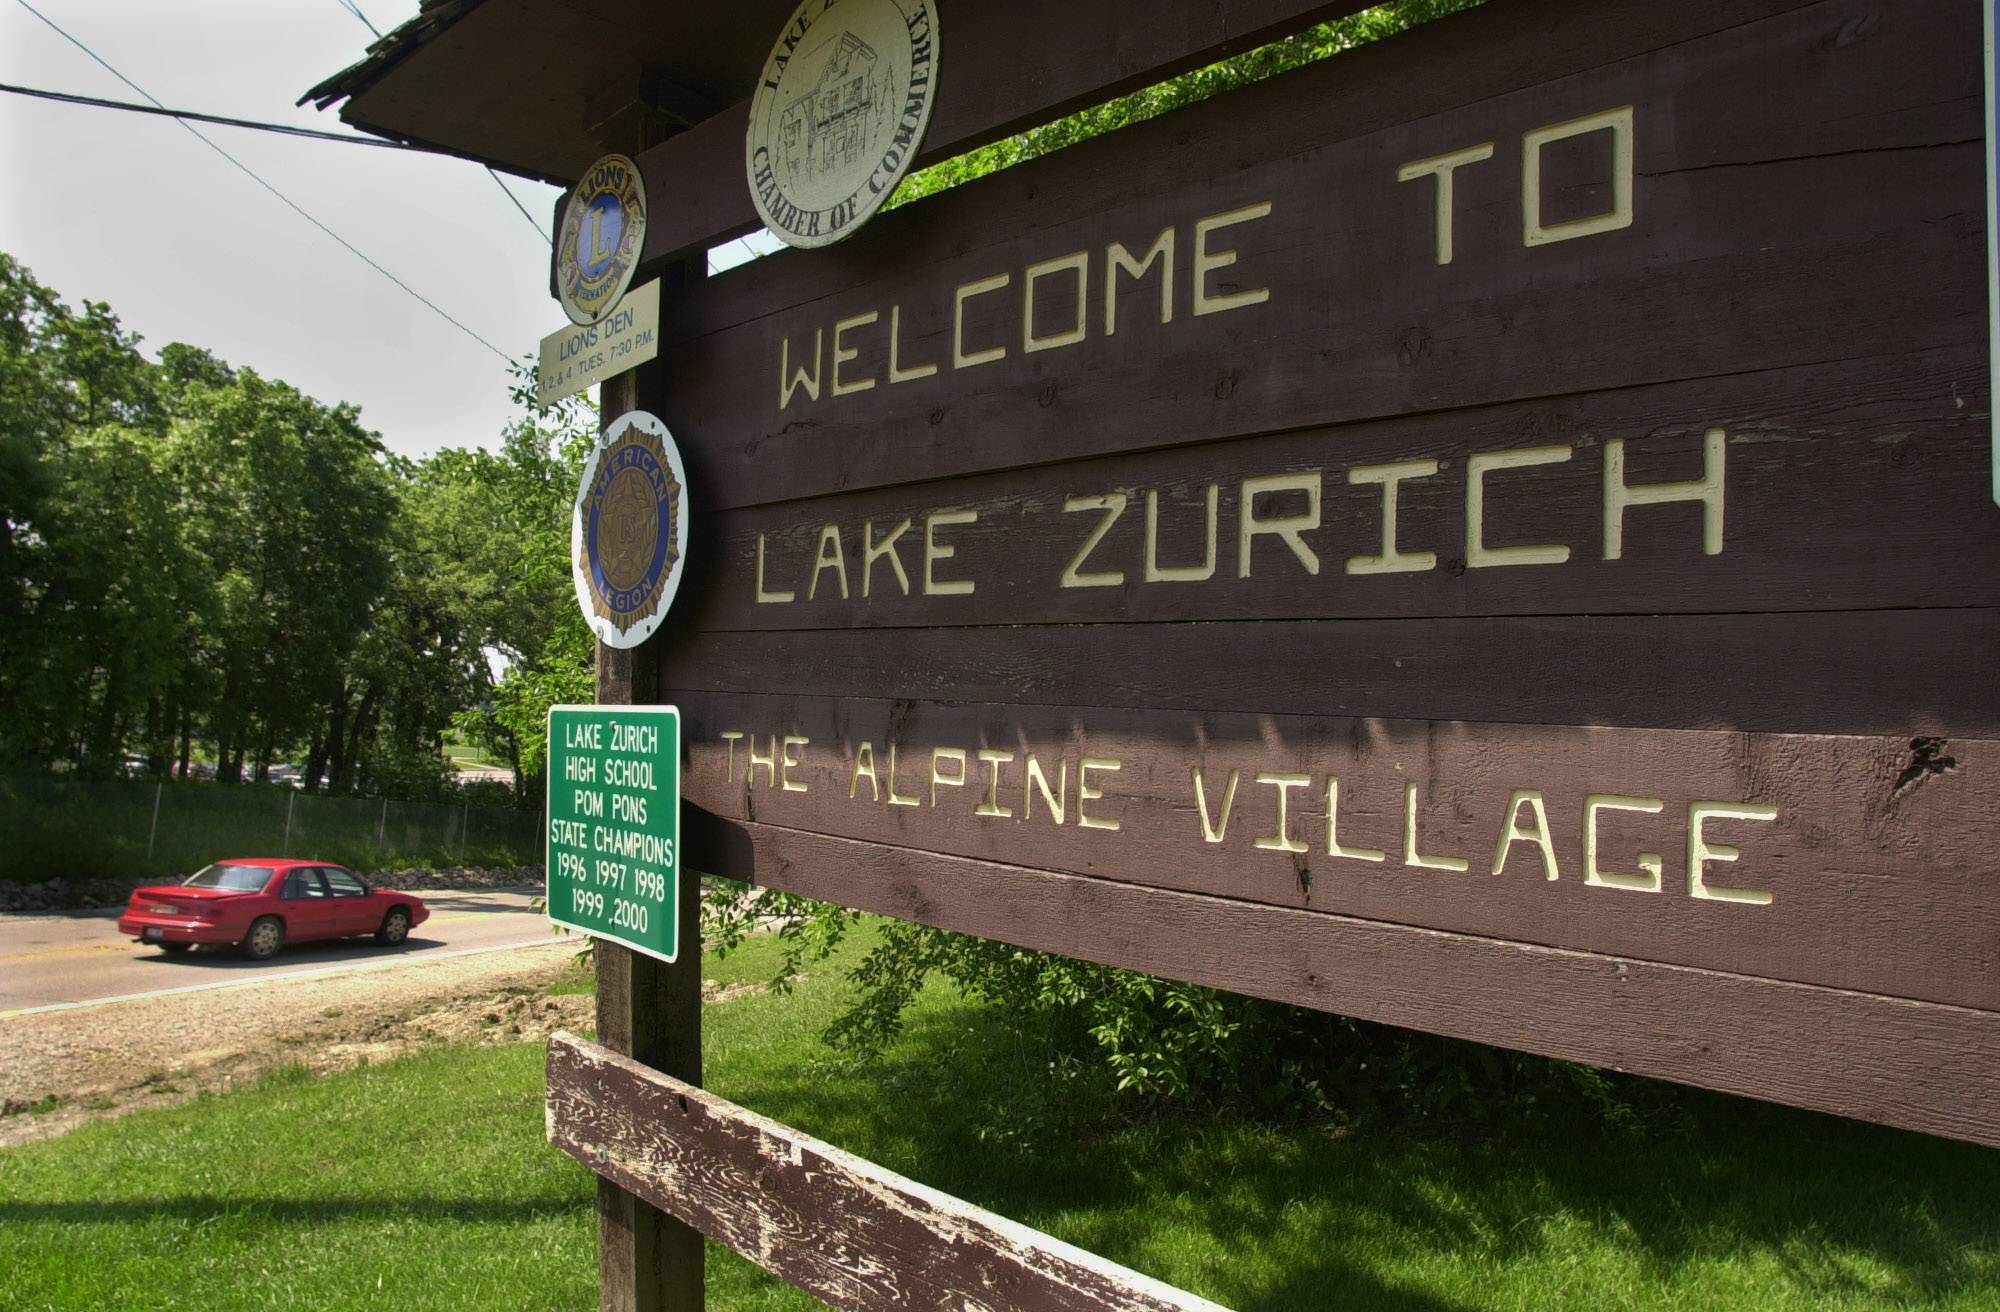 Higher video gambling liquor license proposed in Lake Zurich